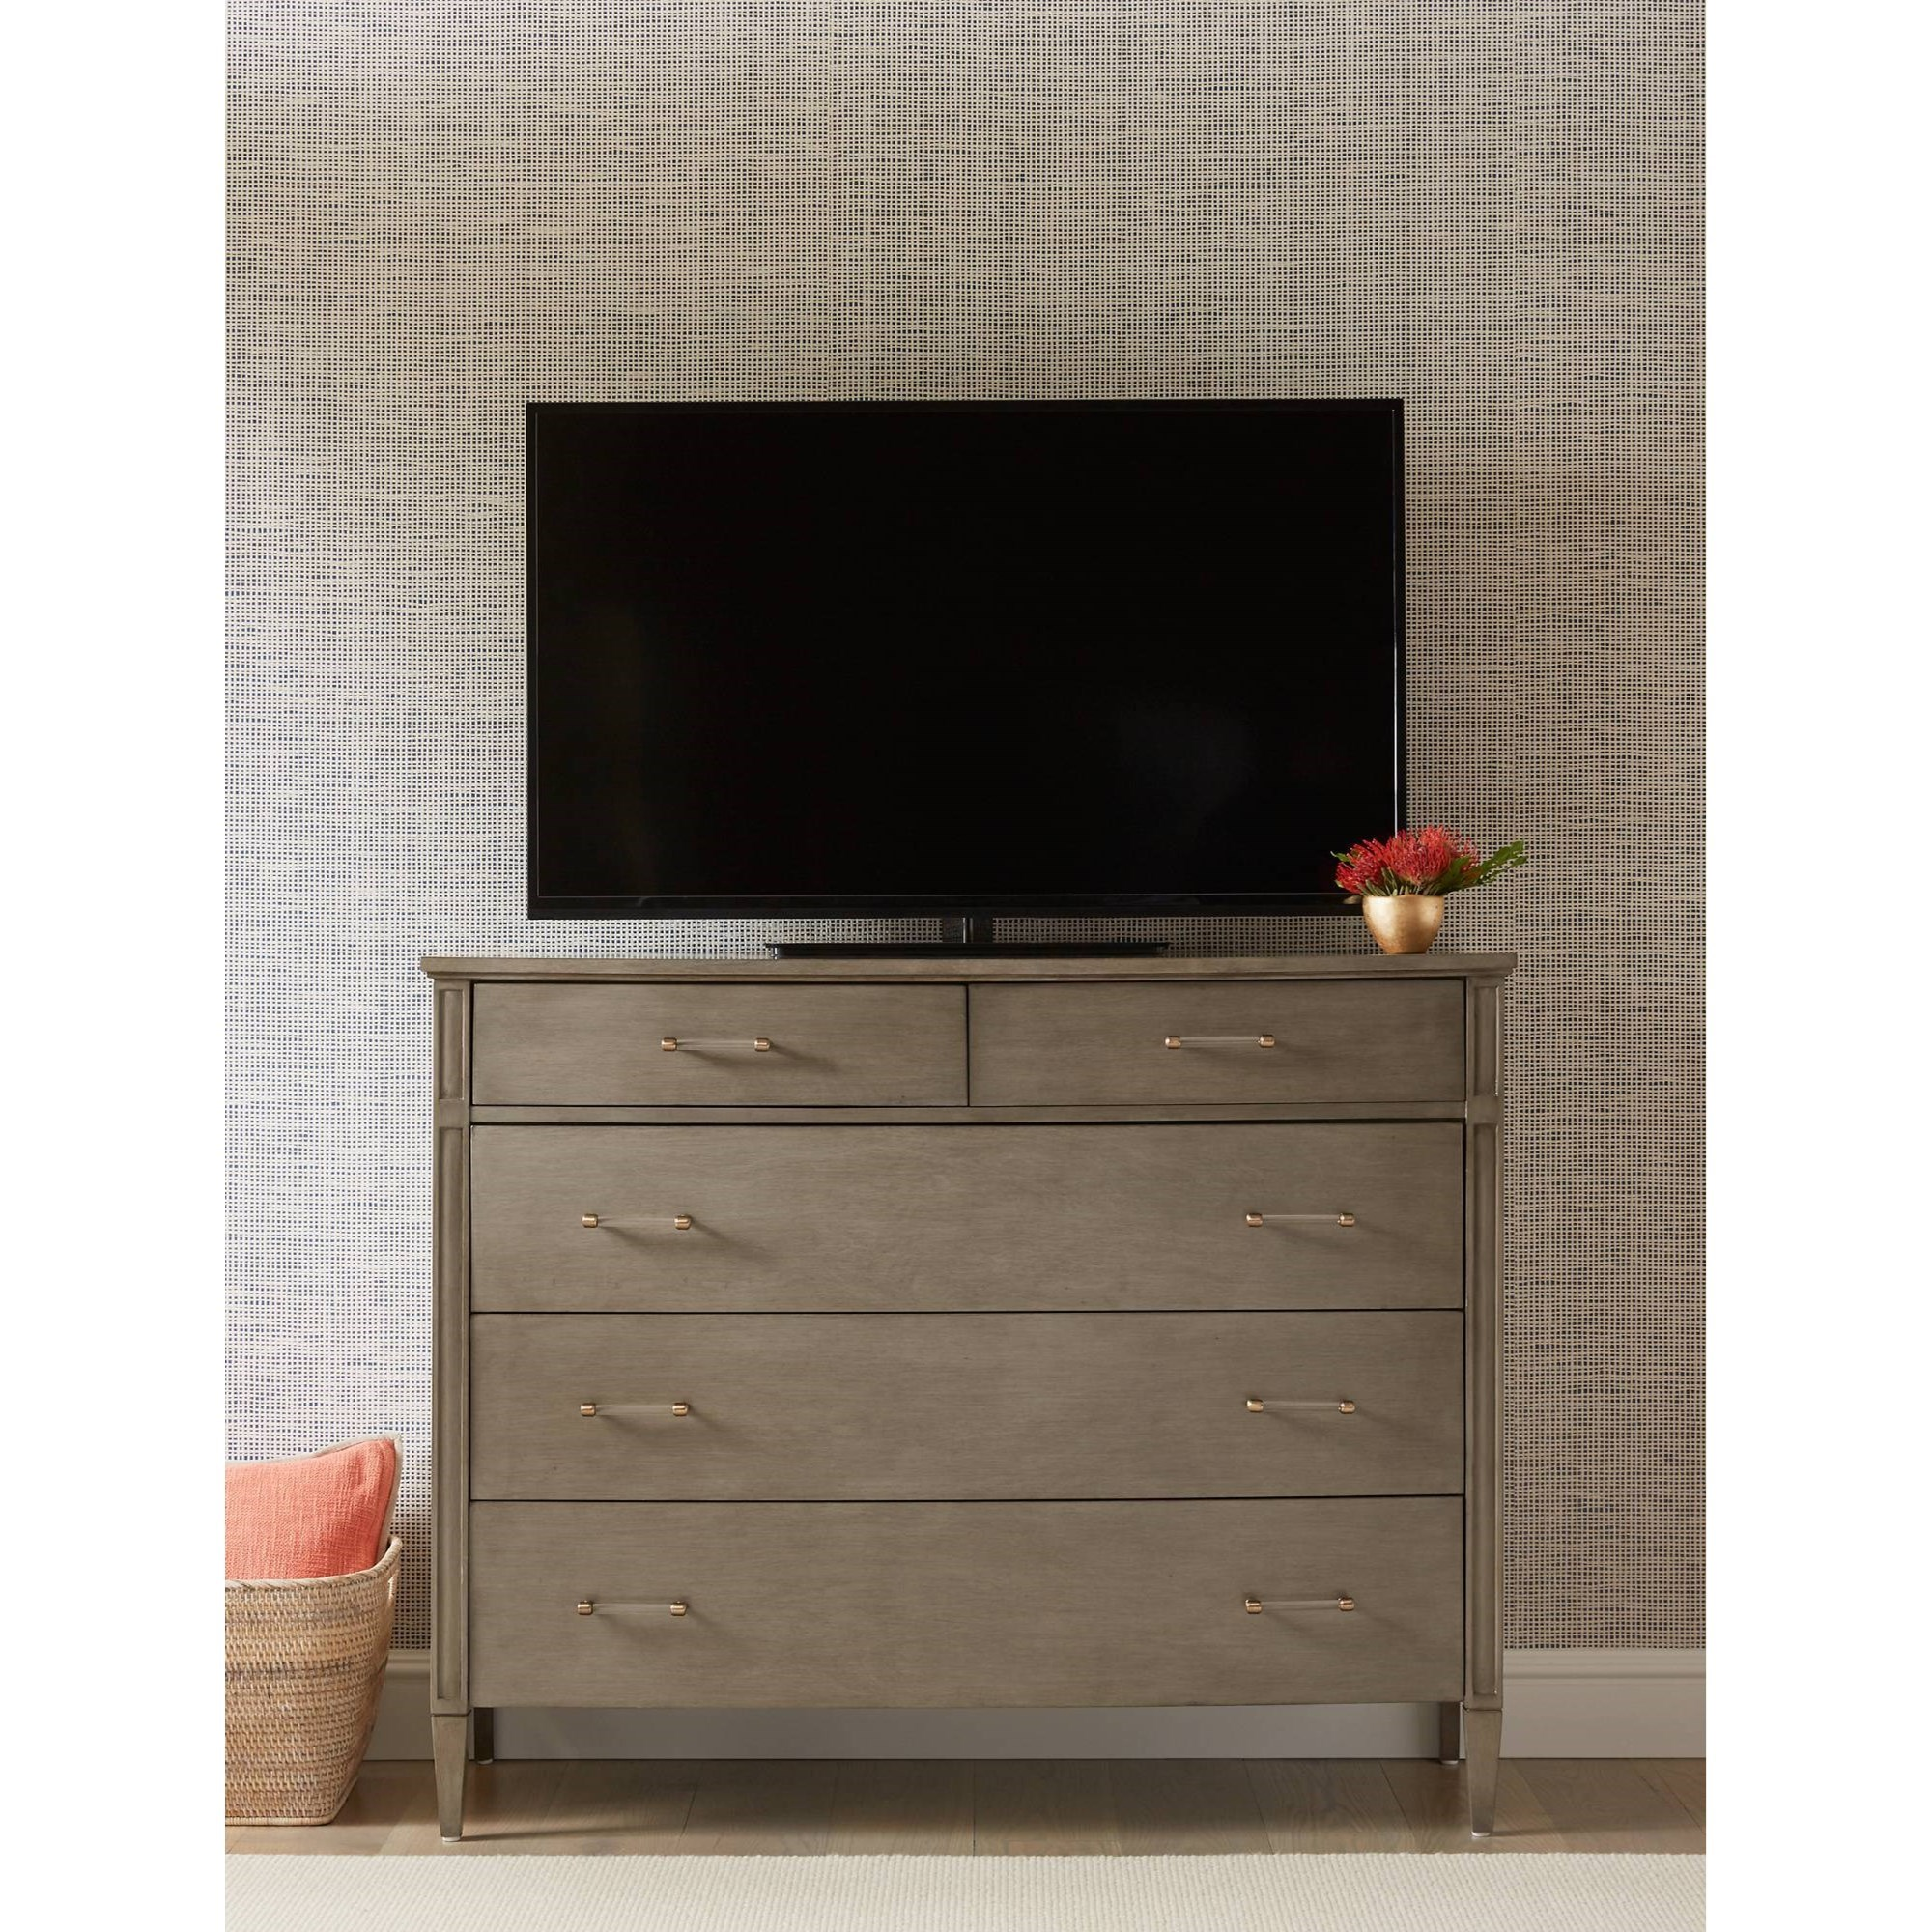 Where to Buy Coastal Living OasisMulholland Media Chest